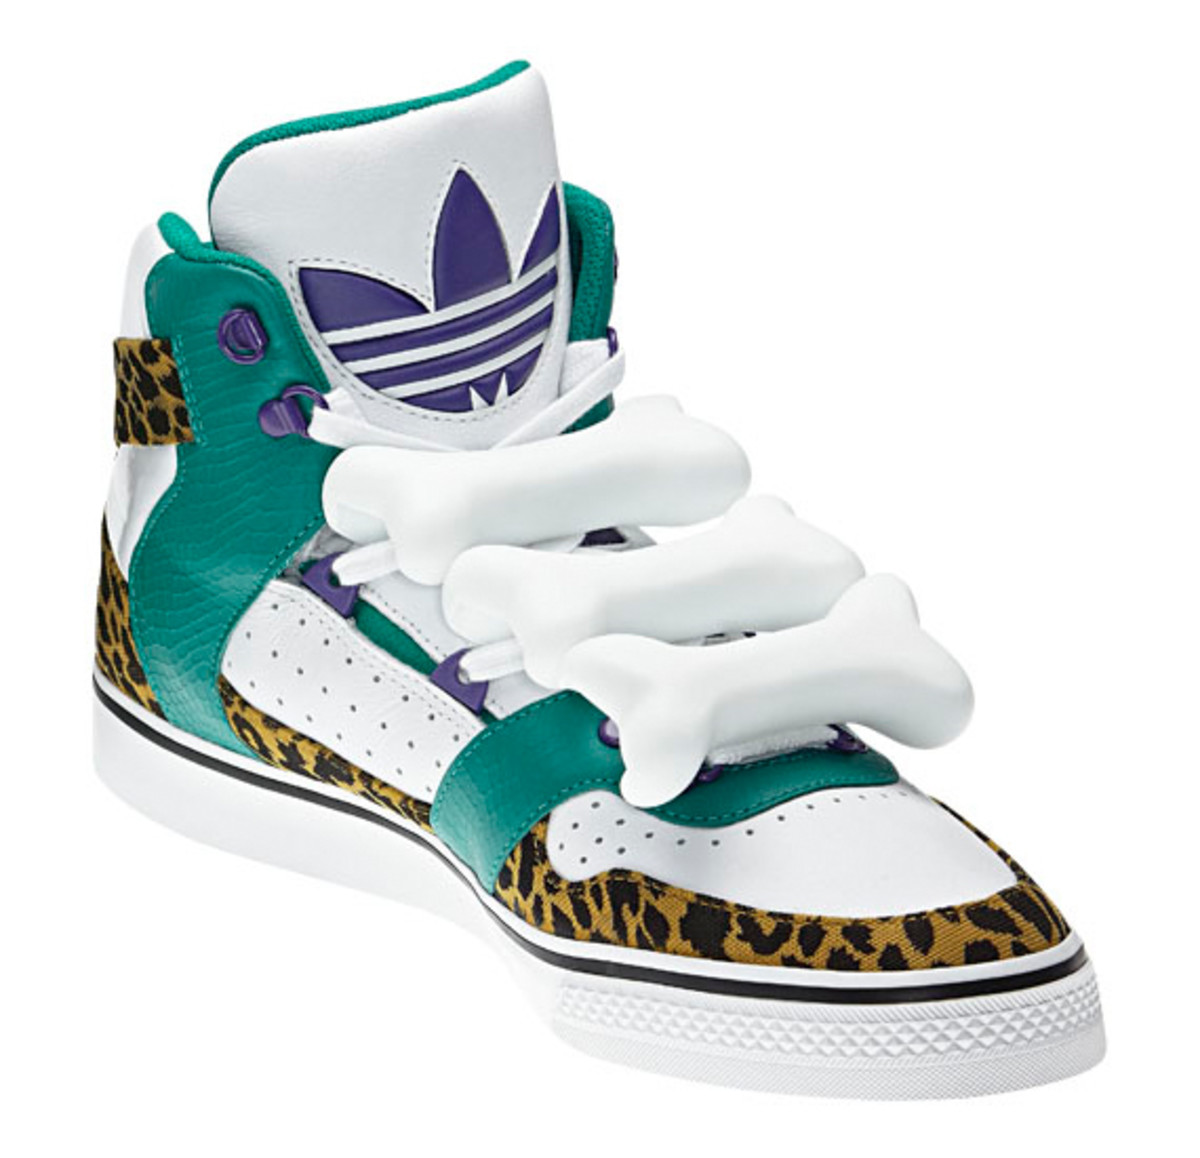 adidas-originals-by-jeremy-scott-august-2011-06